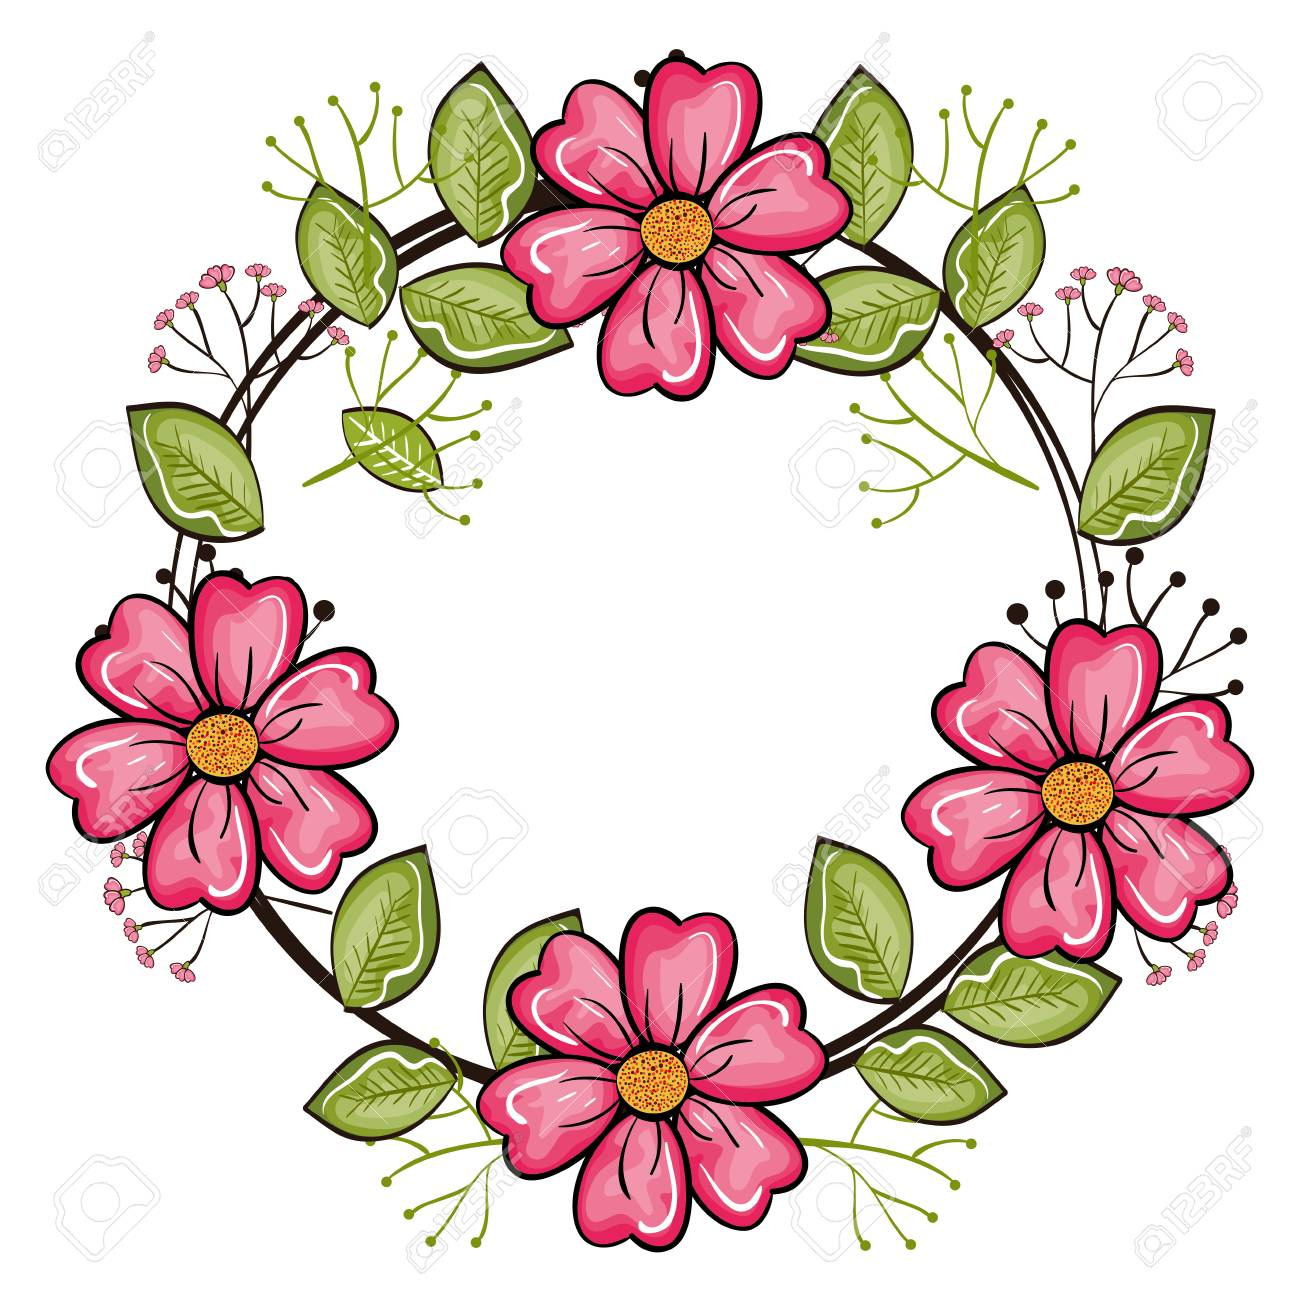 Round Frame With Pink Flowers And Leaves Over White Background